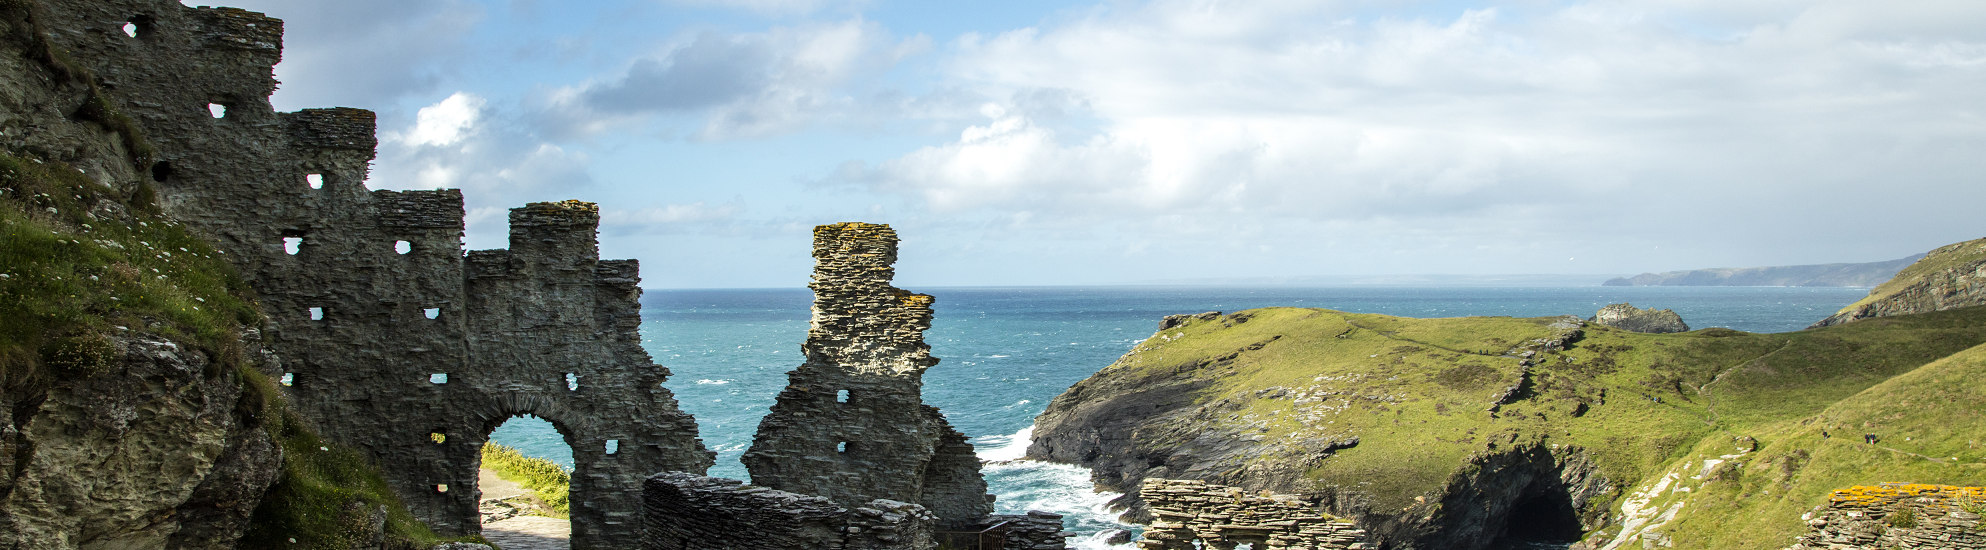 Tintagel Header 1986x550 - Heritage and Genealogy